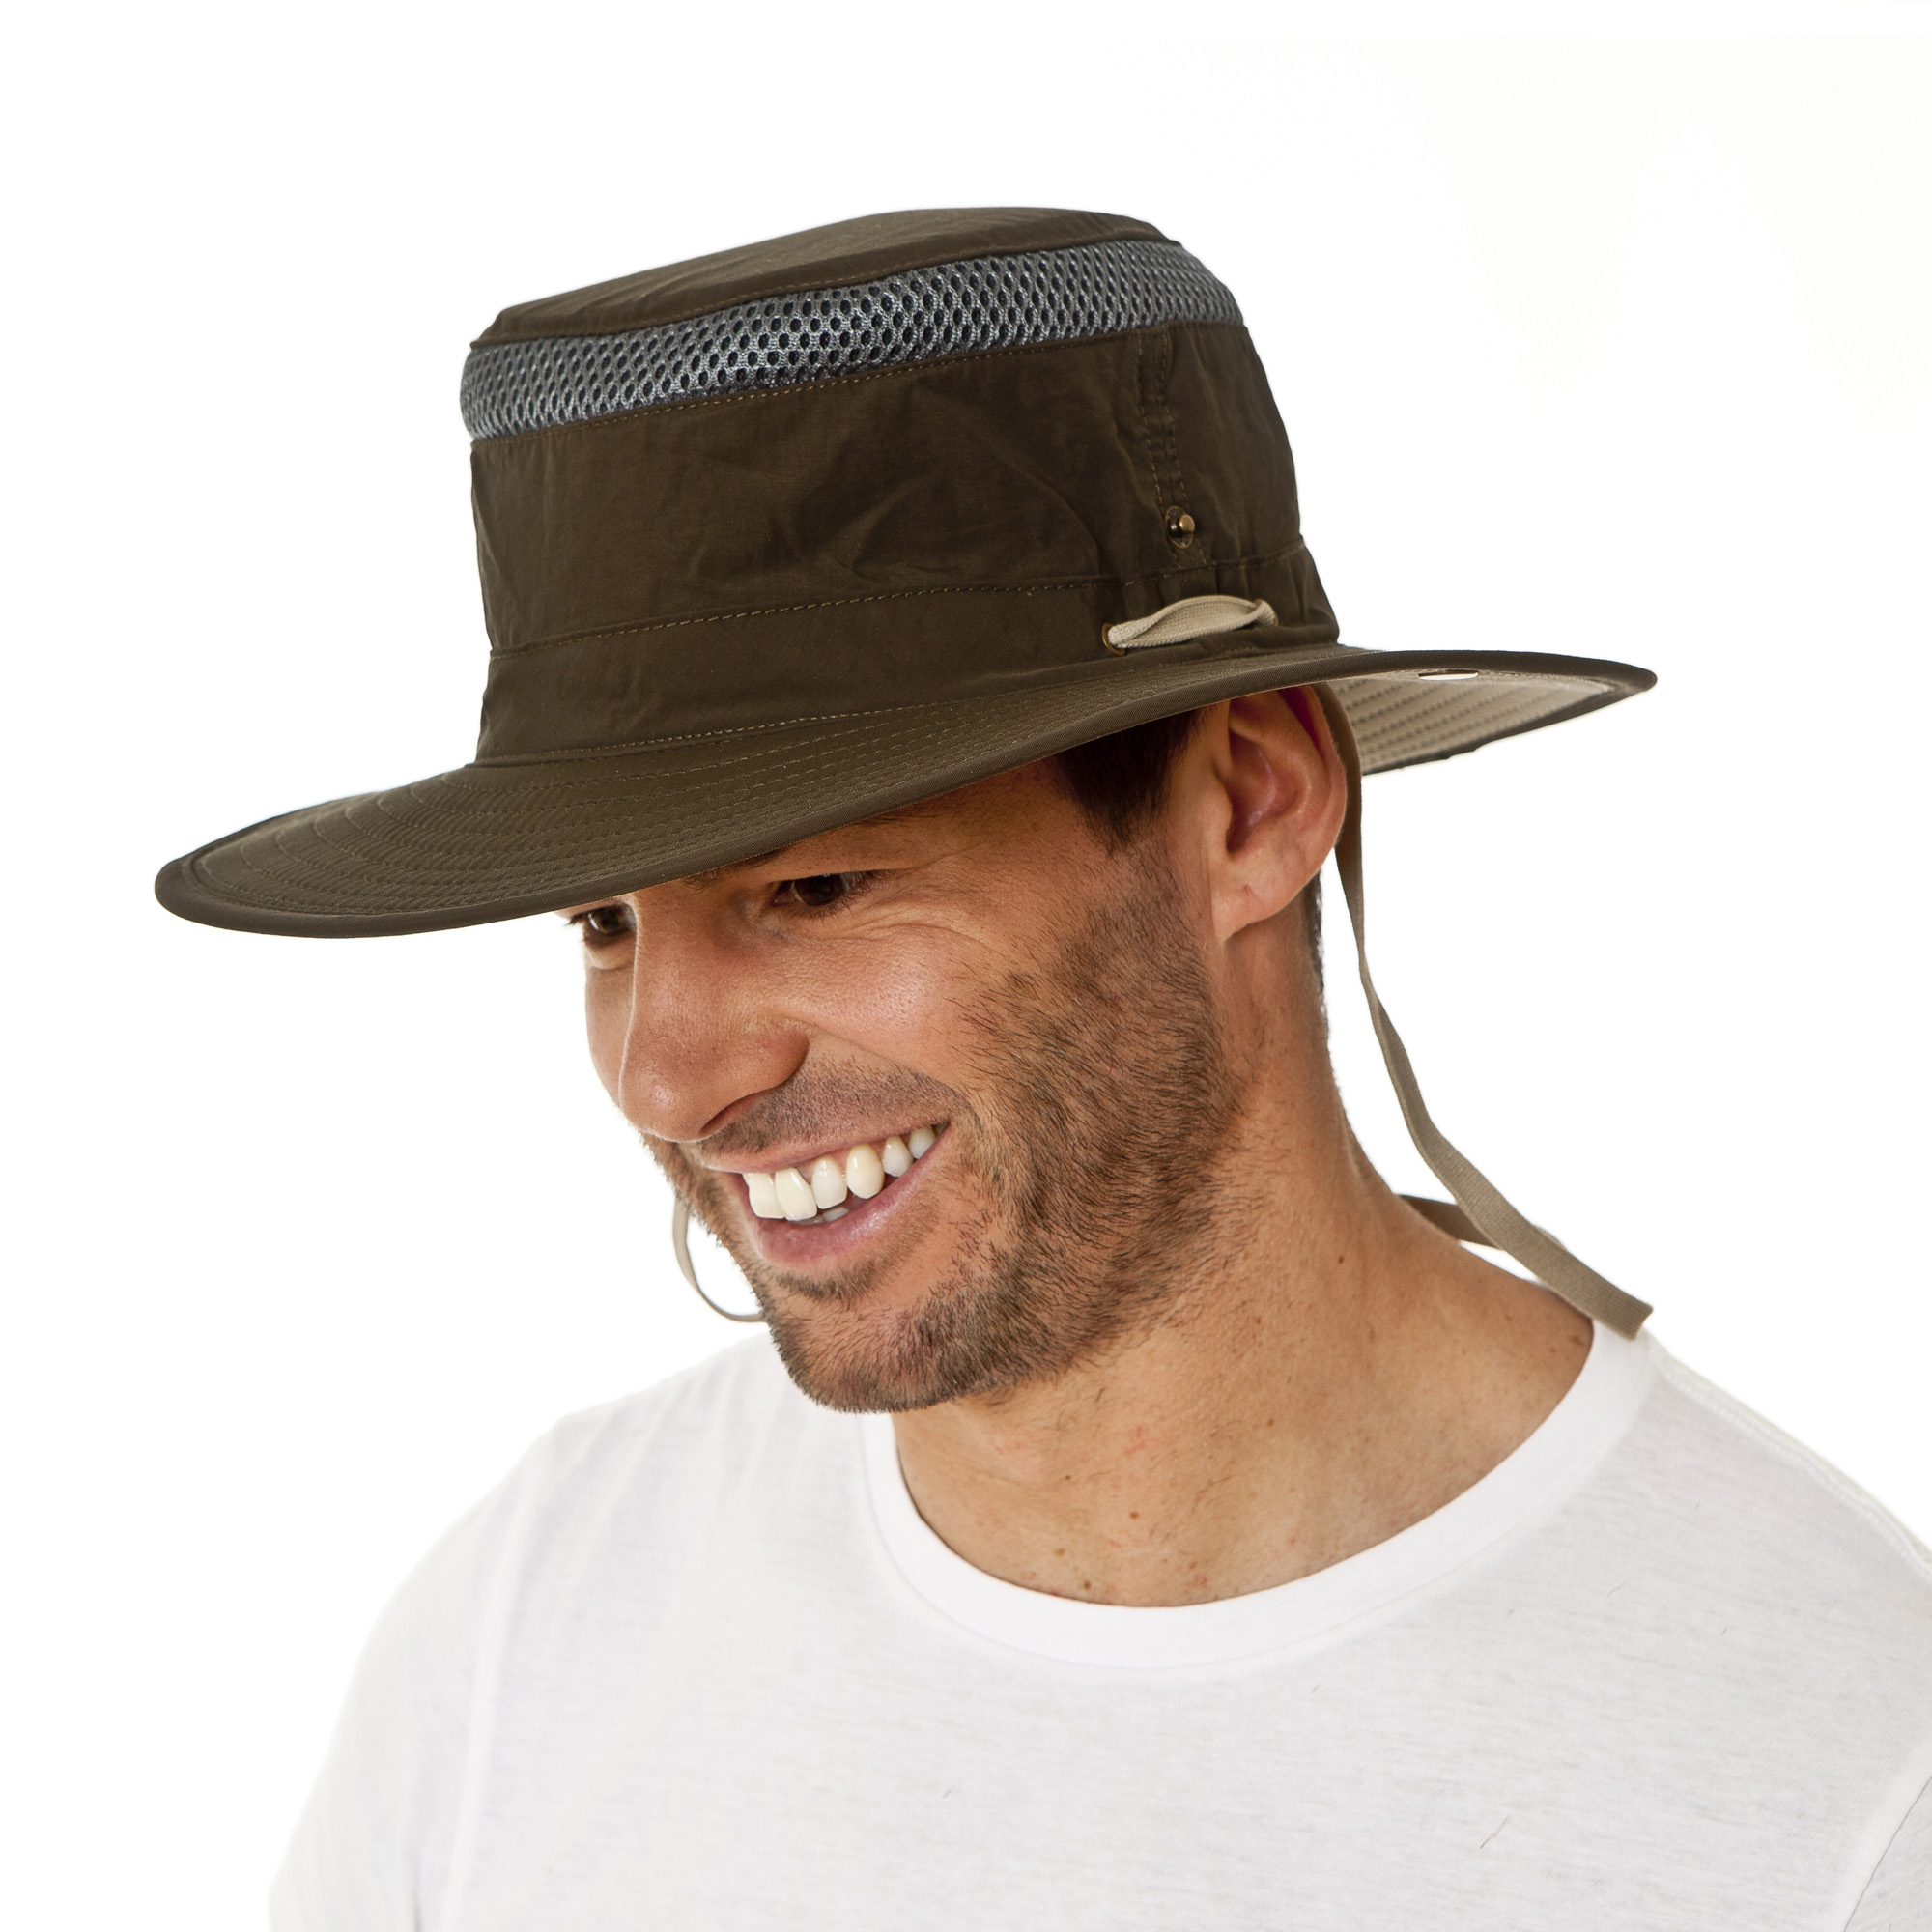 i-Smalls Men/'s Summer Vented Wide Brim Bush Hat with Chin Strap